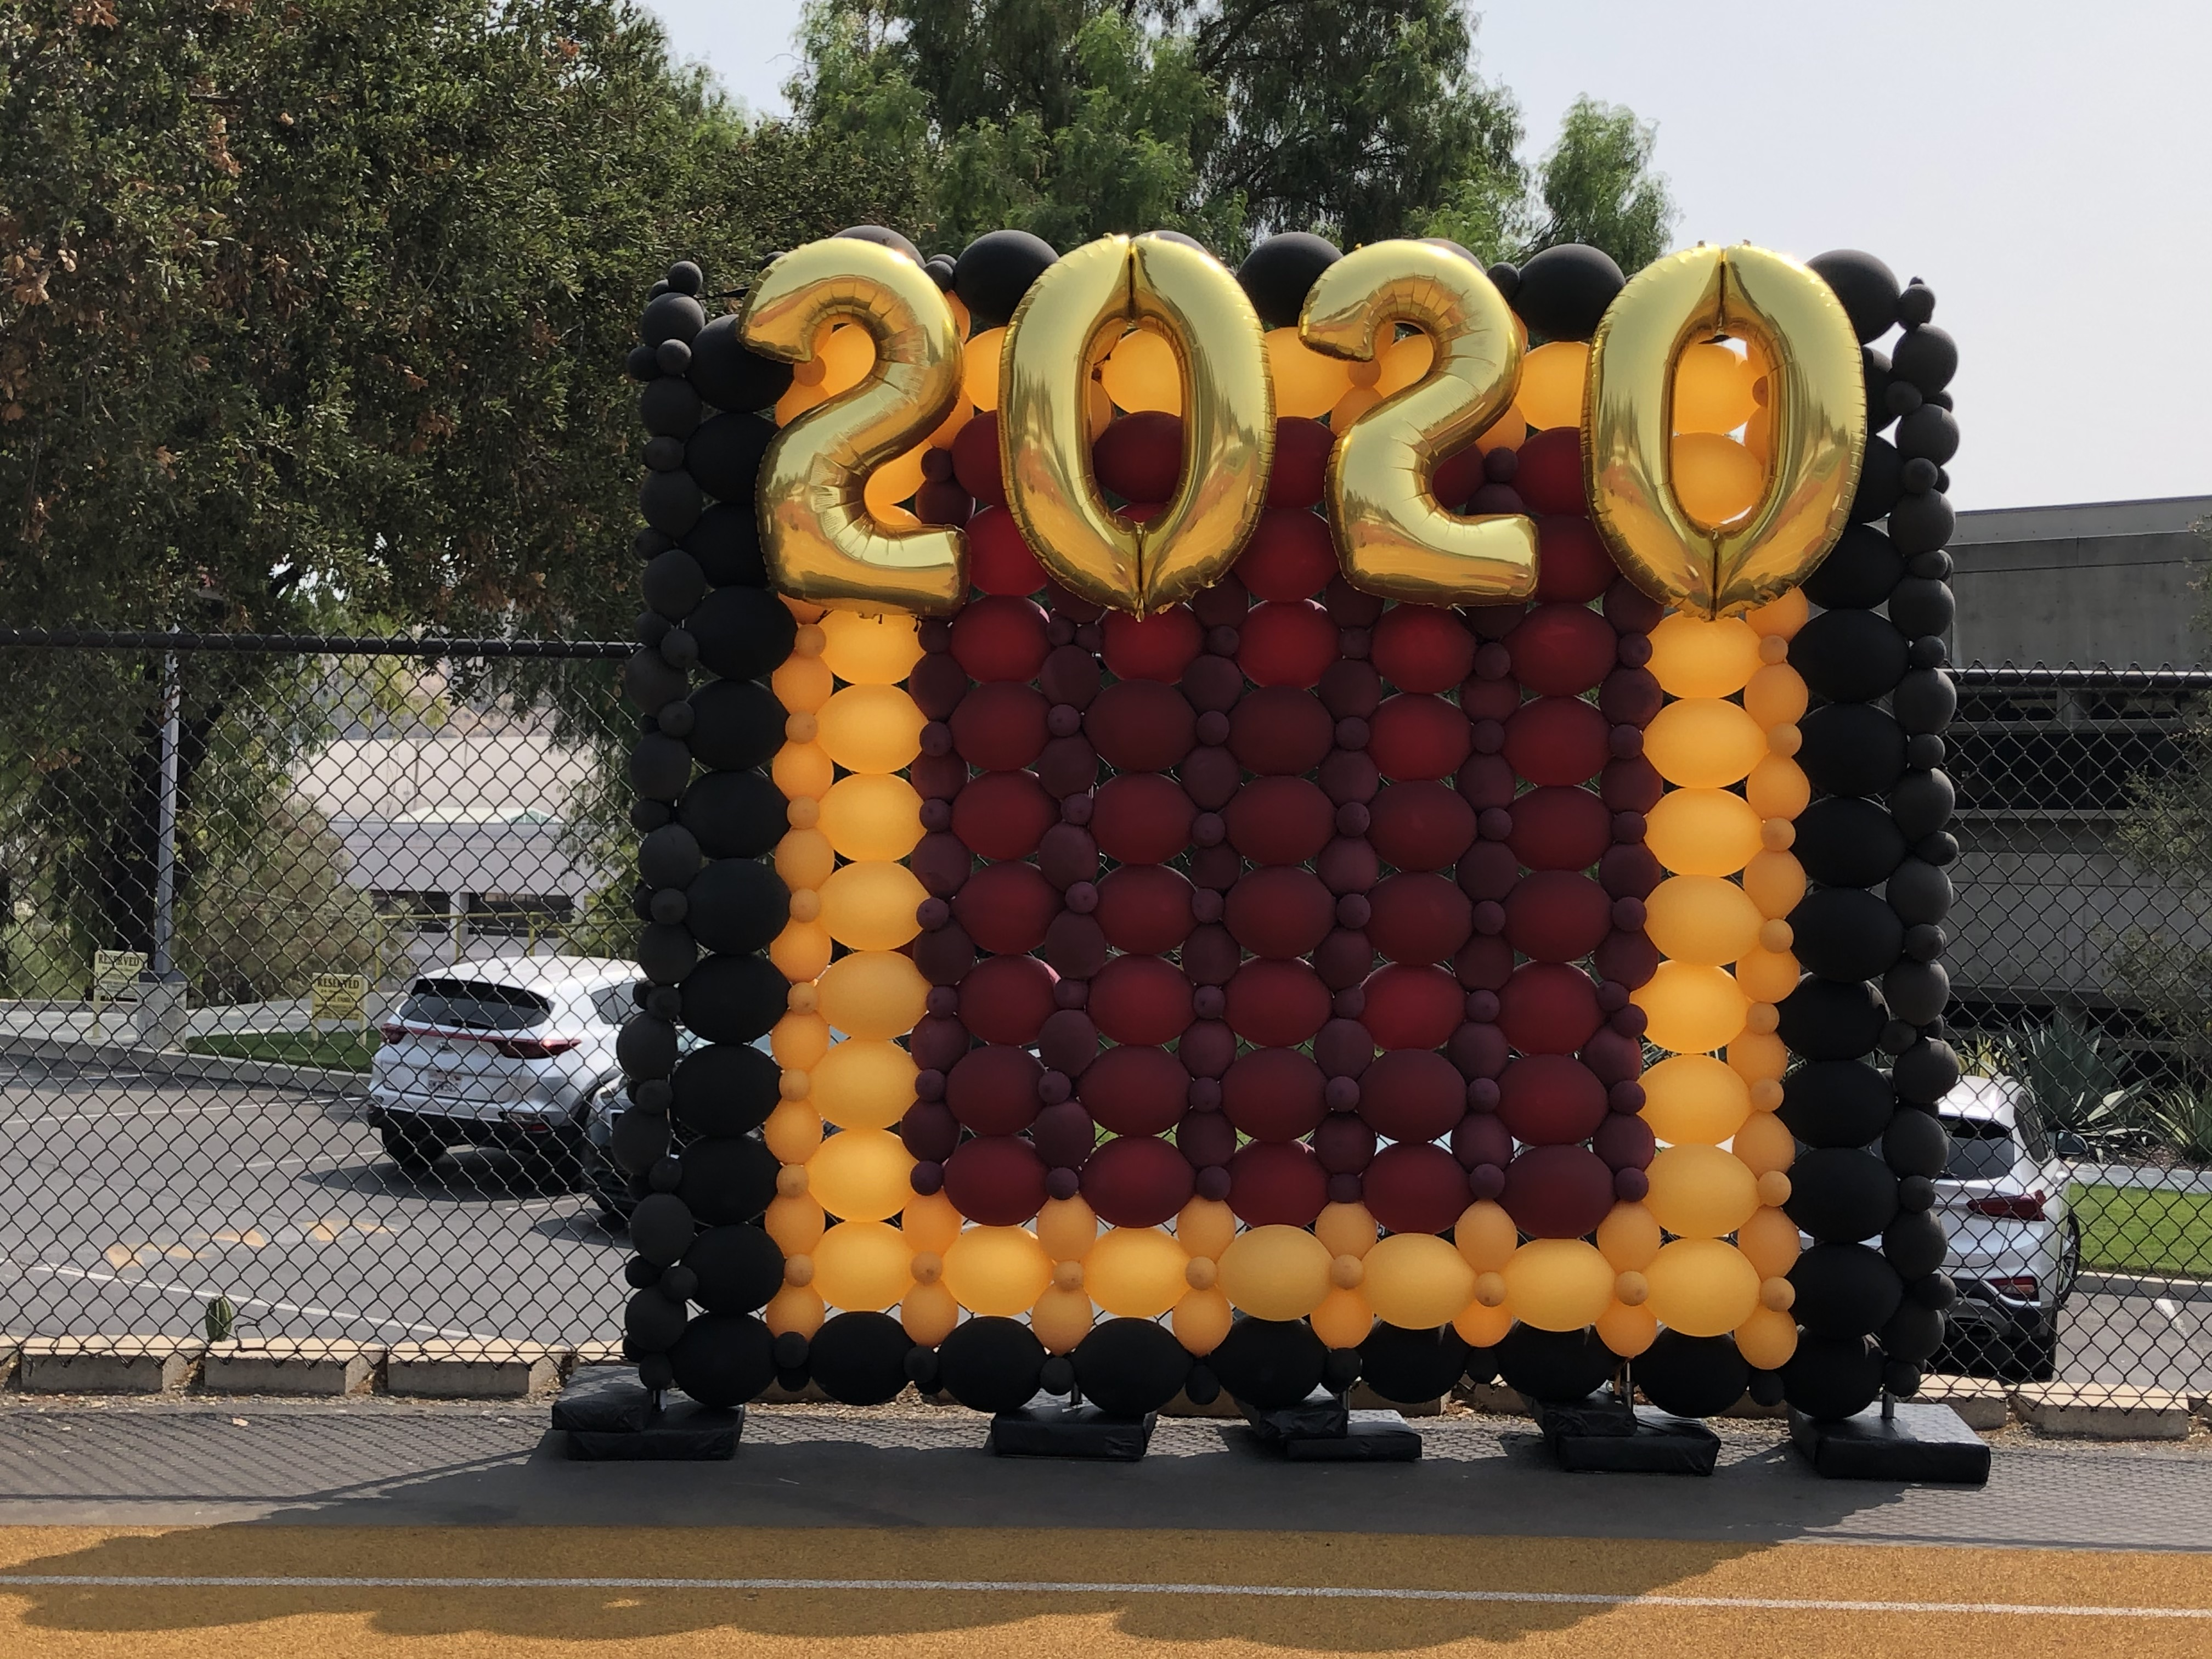 10' X 10' Balloon Backdrop